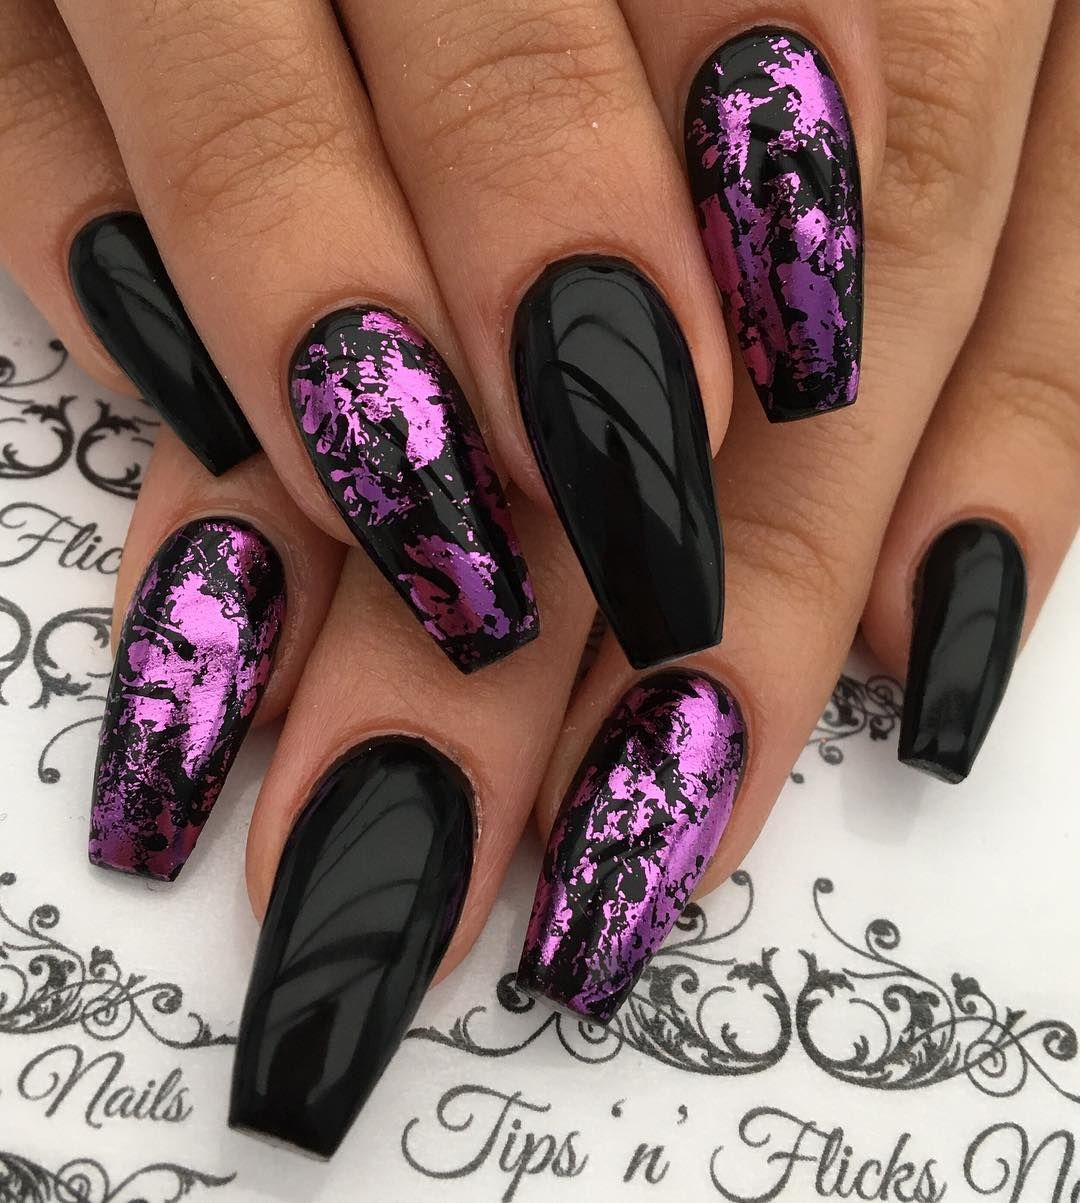 Pin by ✨Blessed187✨ on Nails✨✨ | Pinterest | Instagram, Nail ...